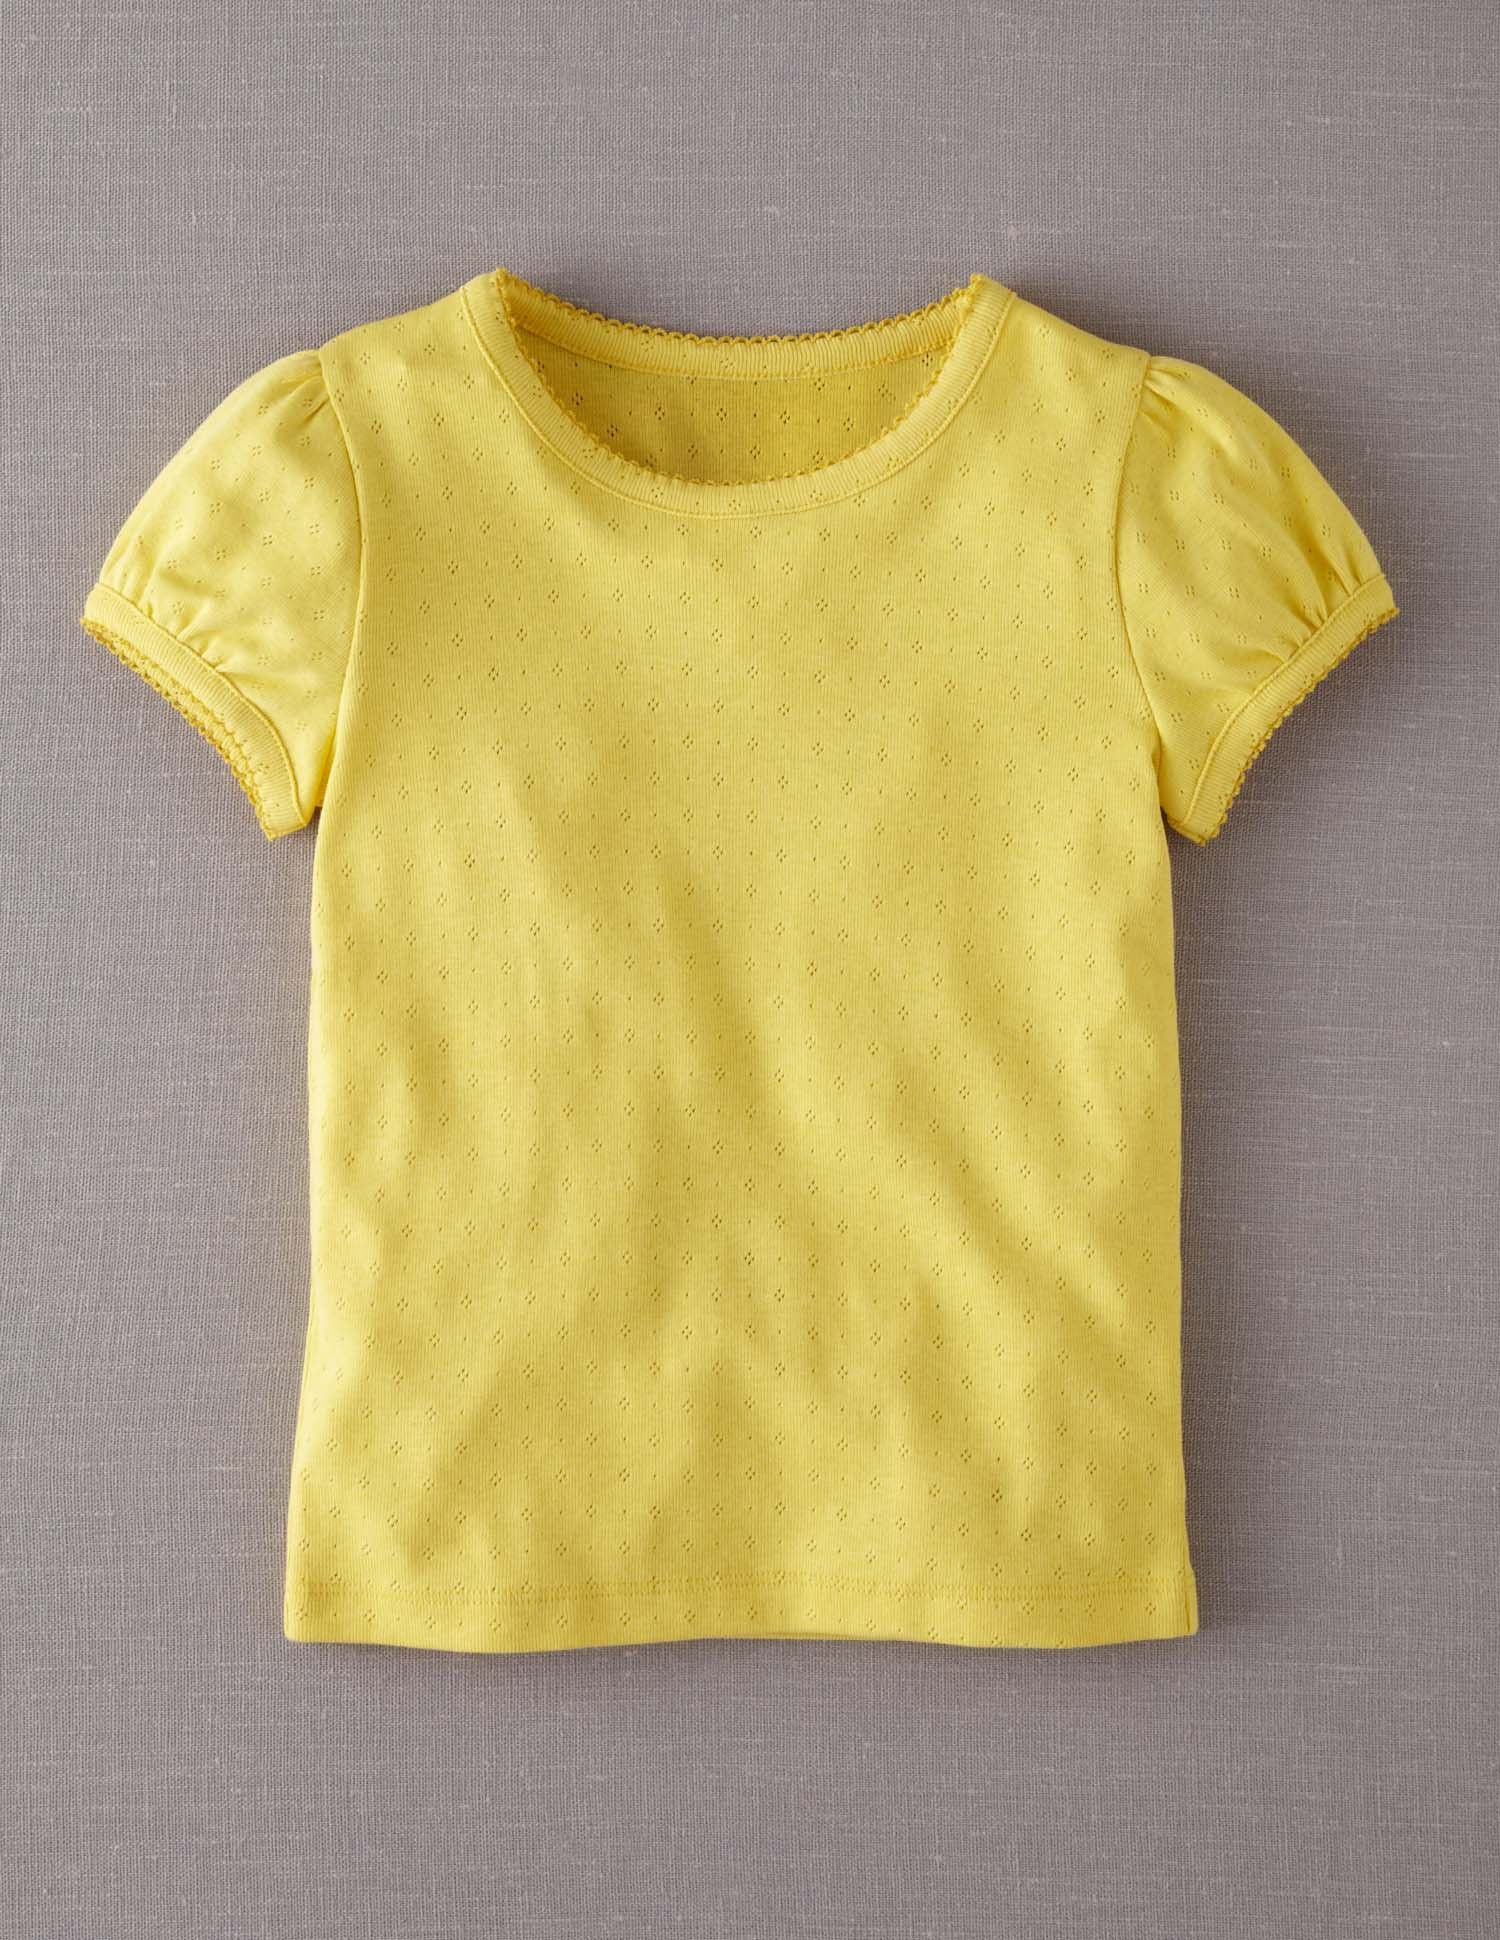 Hubsches T Shirt Mit Zierborte With Images Shirts Tops Nice Tops